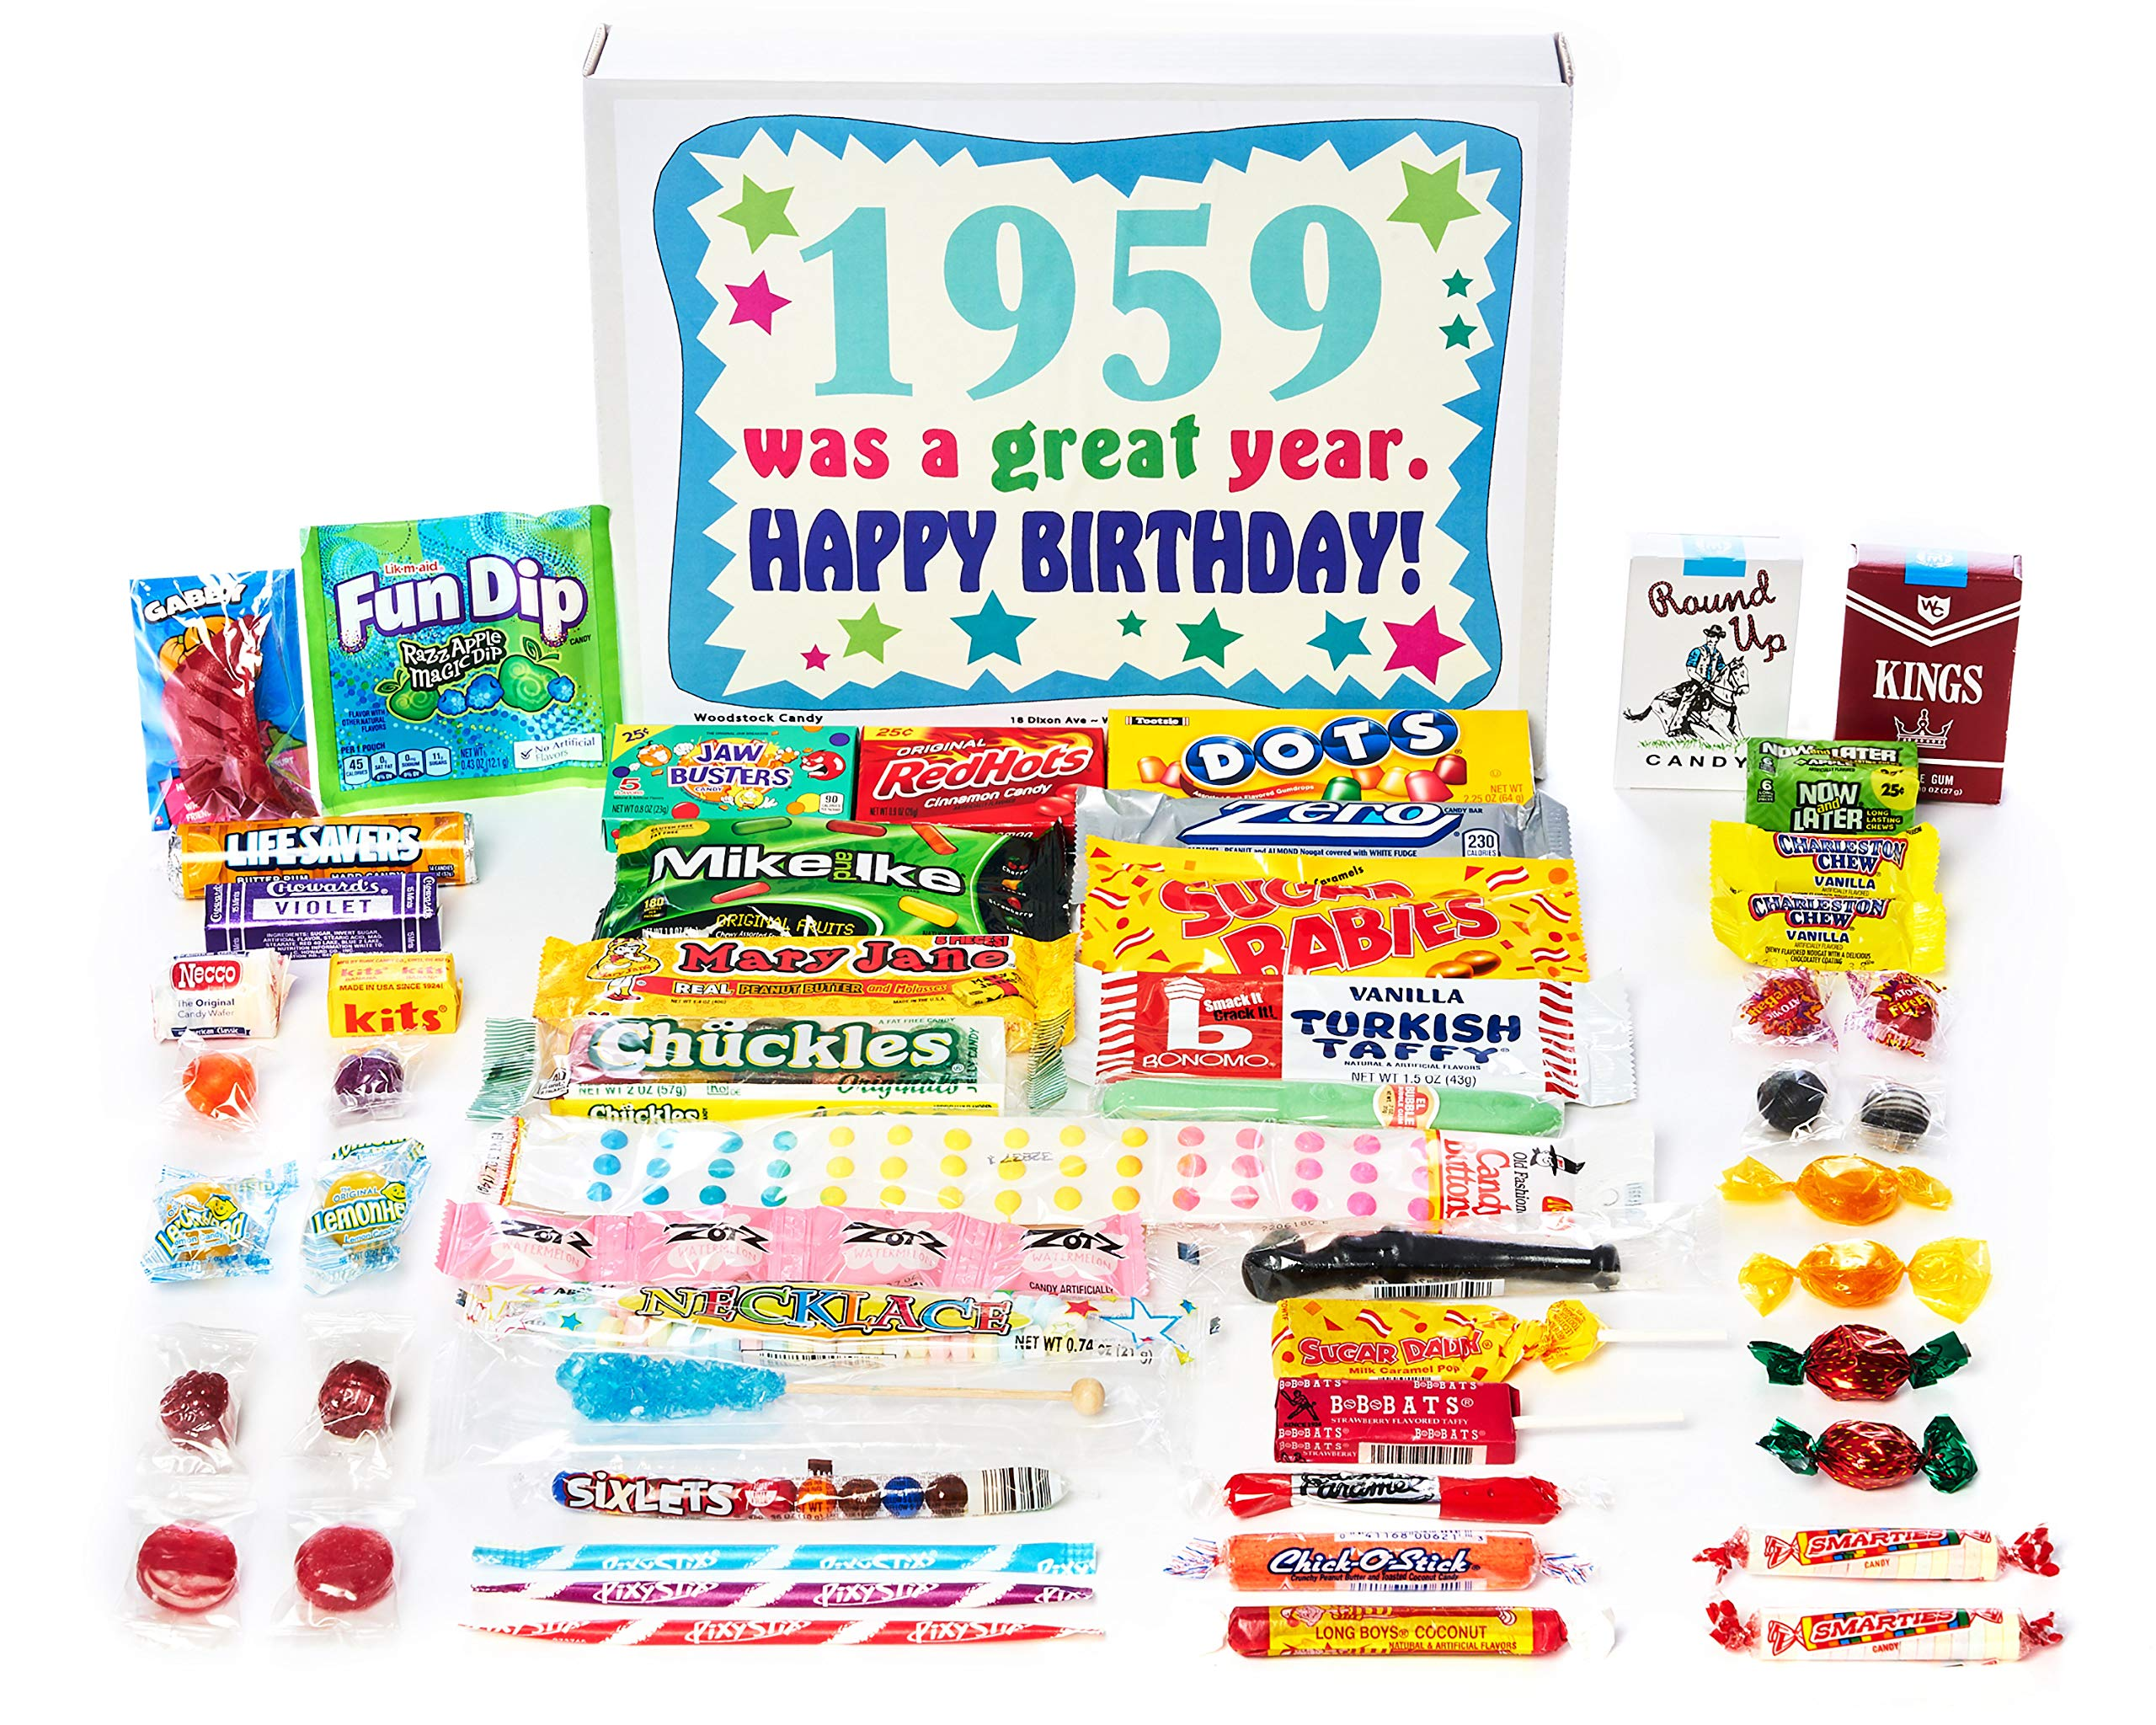 Woodstock Candy ~ 60th Birthday Gift Box Vintage Nostalgic Candy Assortment from Childhood for 60 Old Man or Woman Born 1959